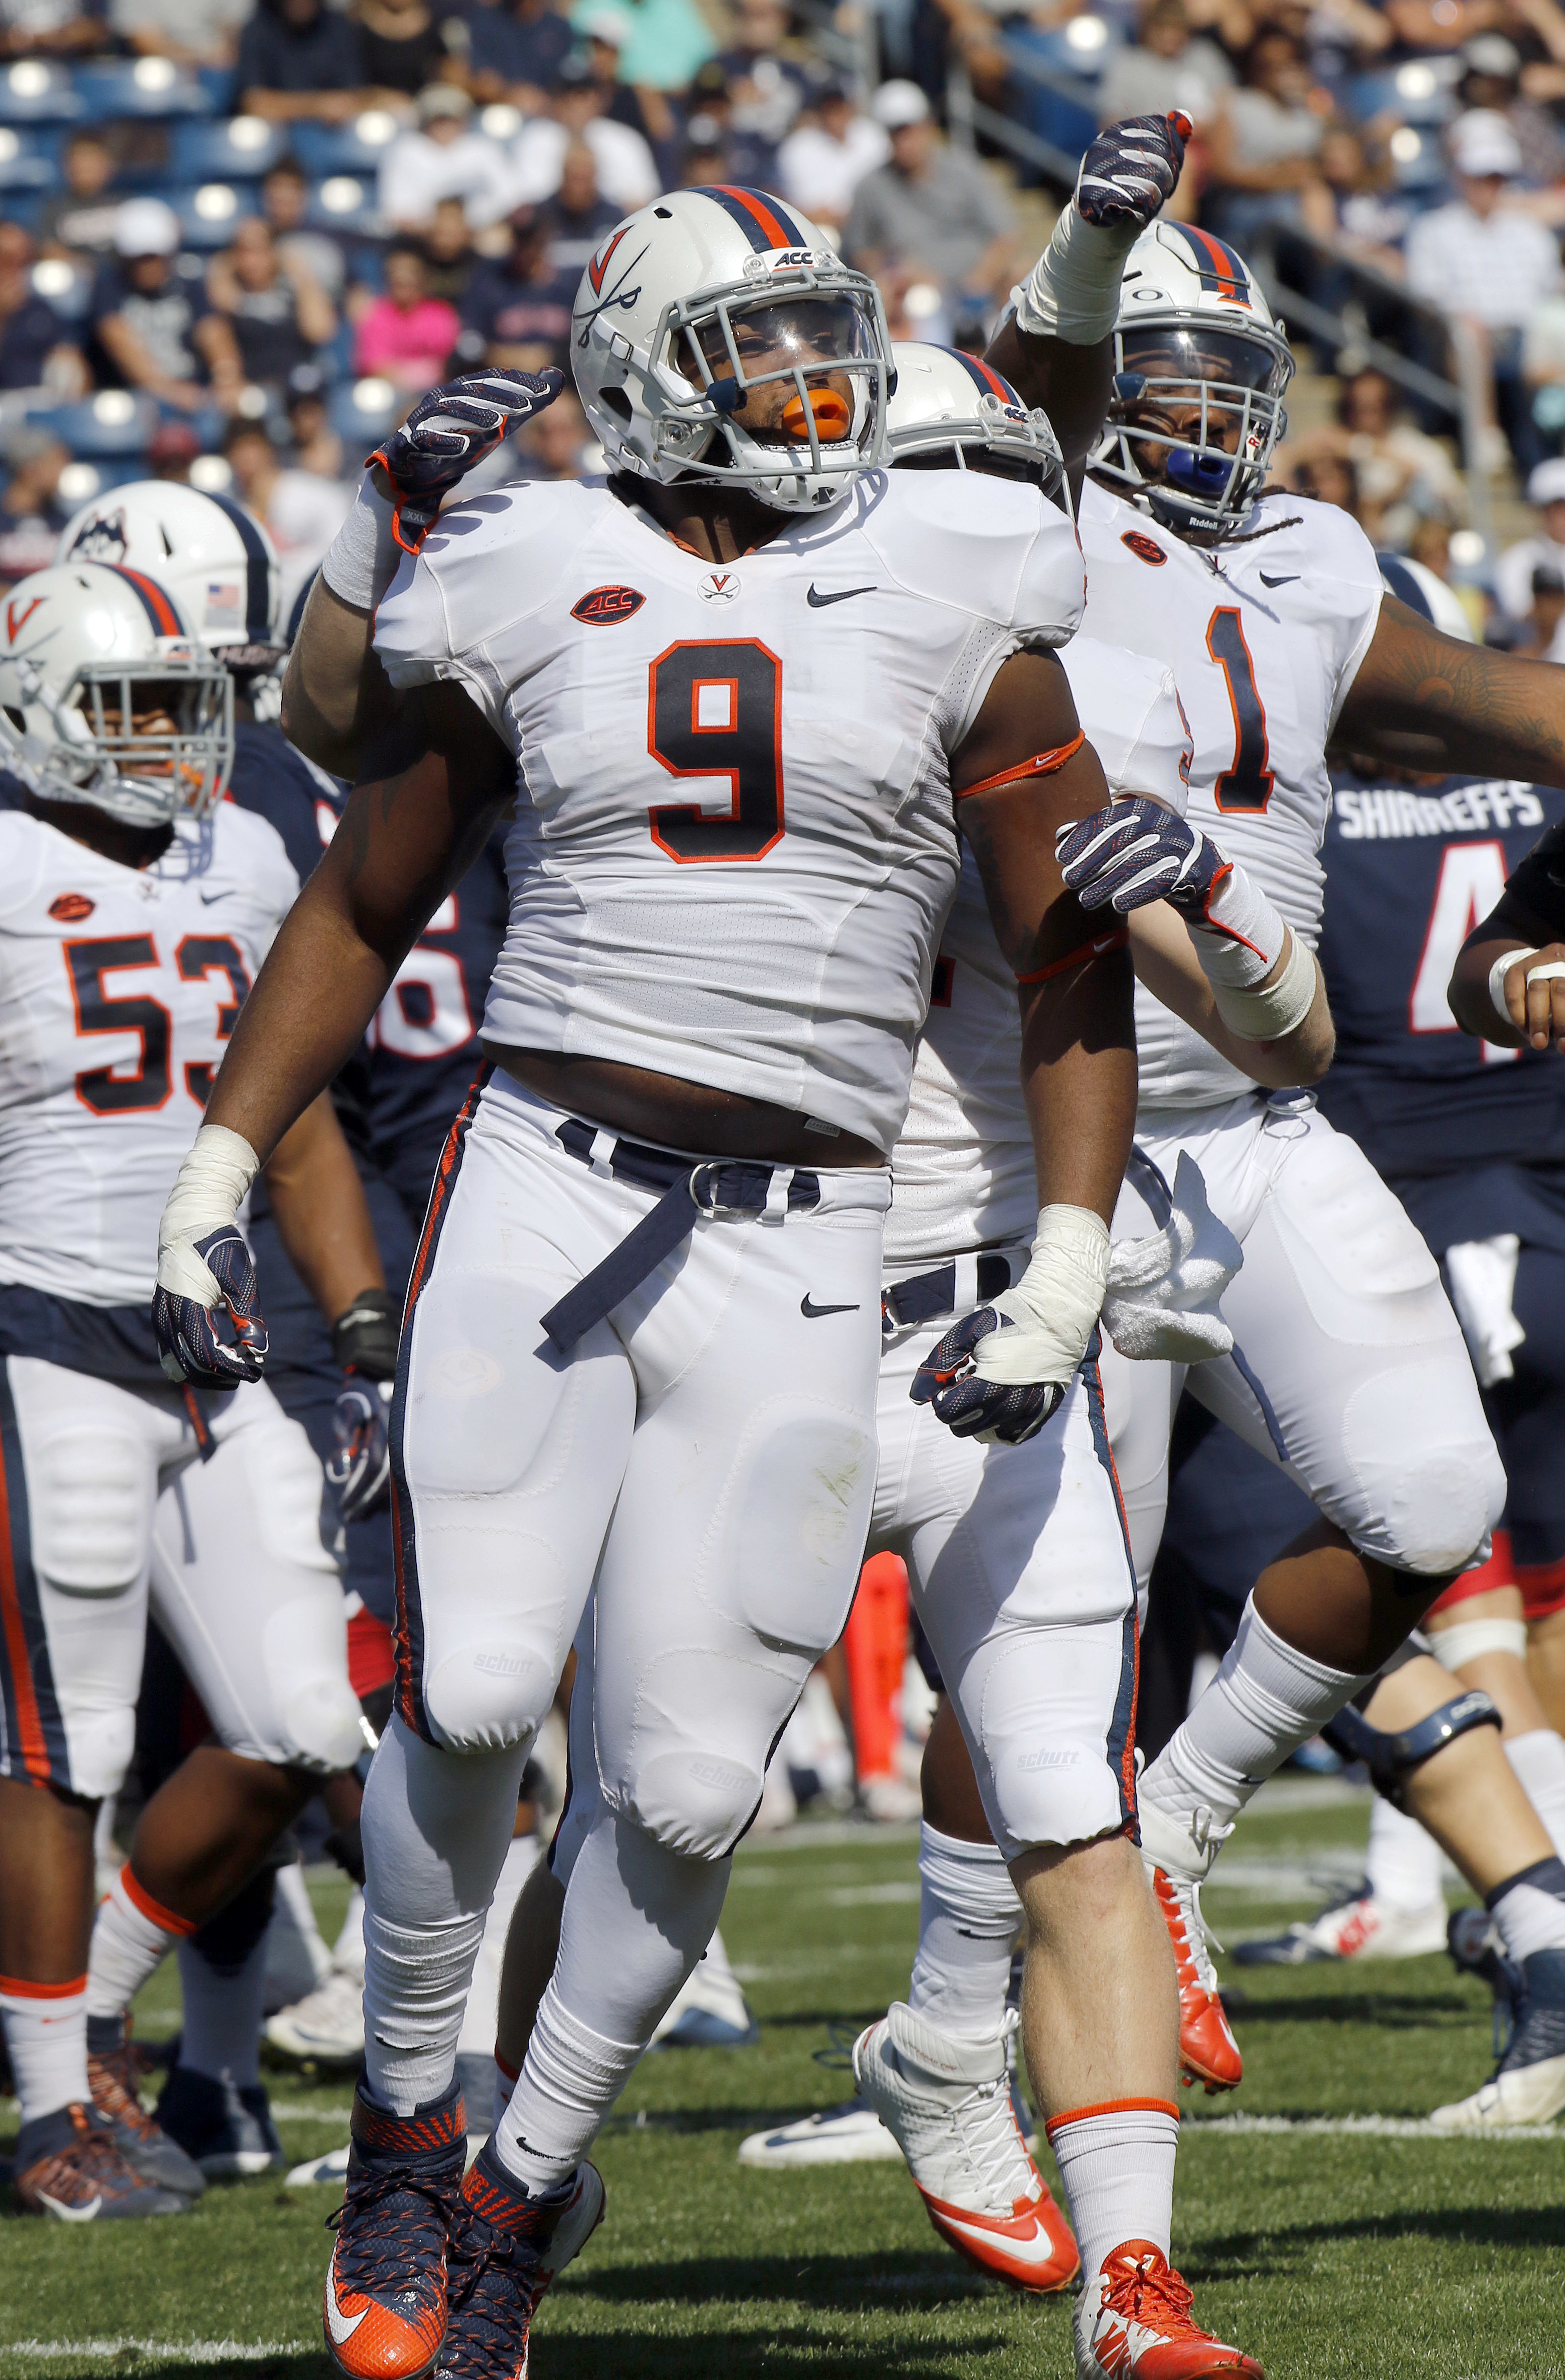 Virginia's Andrew Brown (9) and Donte Wilkins (1) celebrate a sack of Connecticut quarterback Bryant Shirreffs in the first half of an NCAA college football game Saturday, Sept. 17, 2016, in East Hartford, Conn. (AP Photo/Bill Sikes)